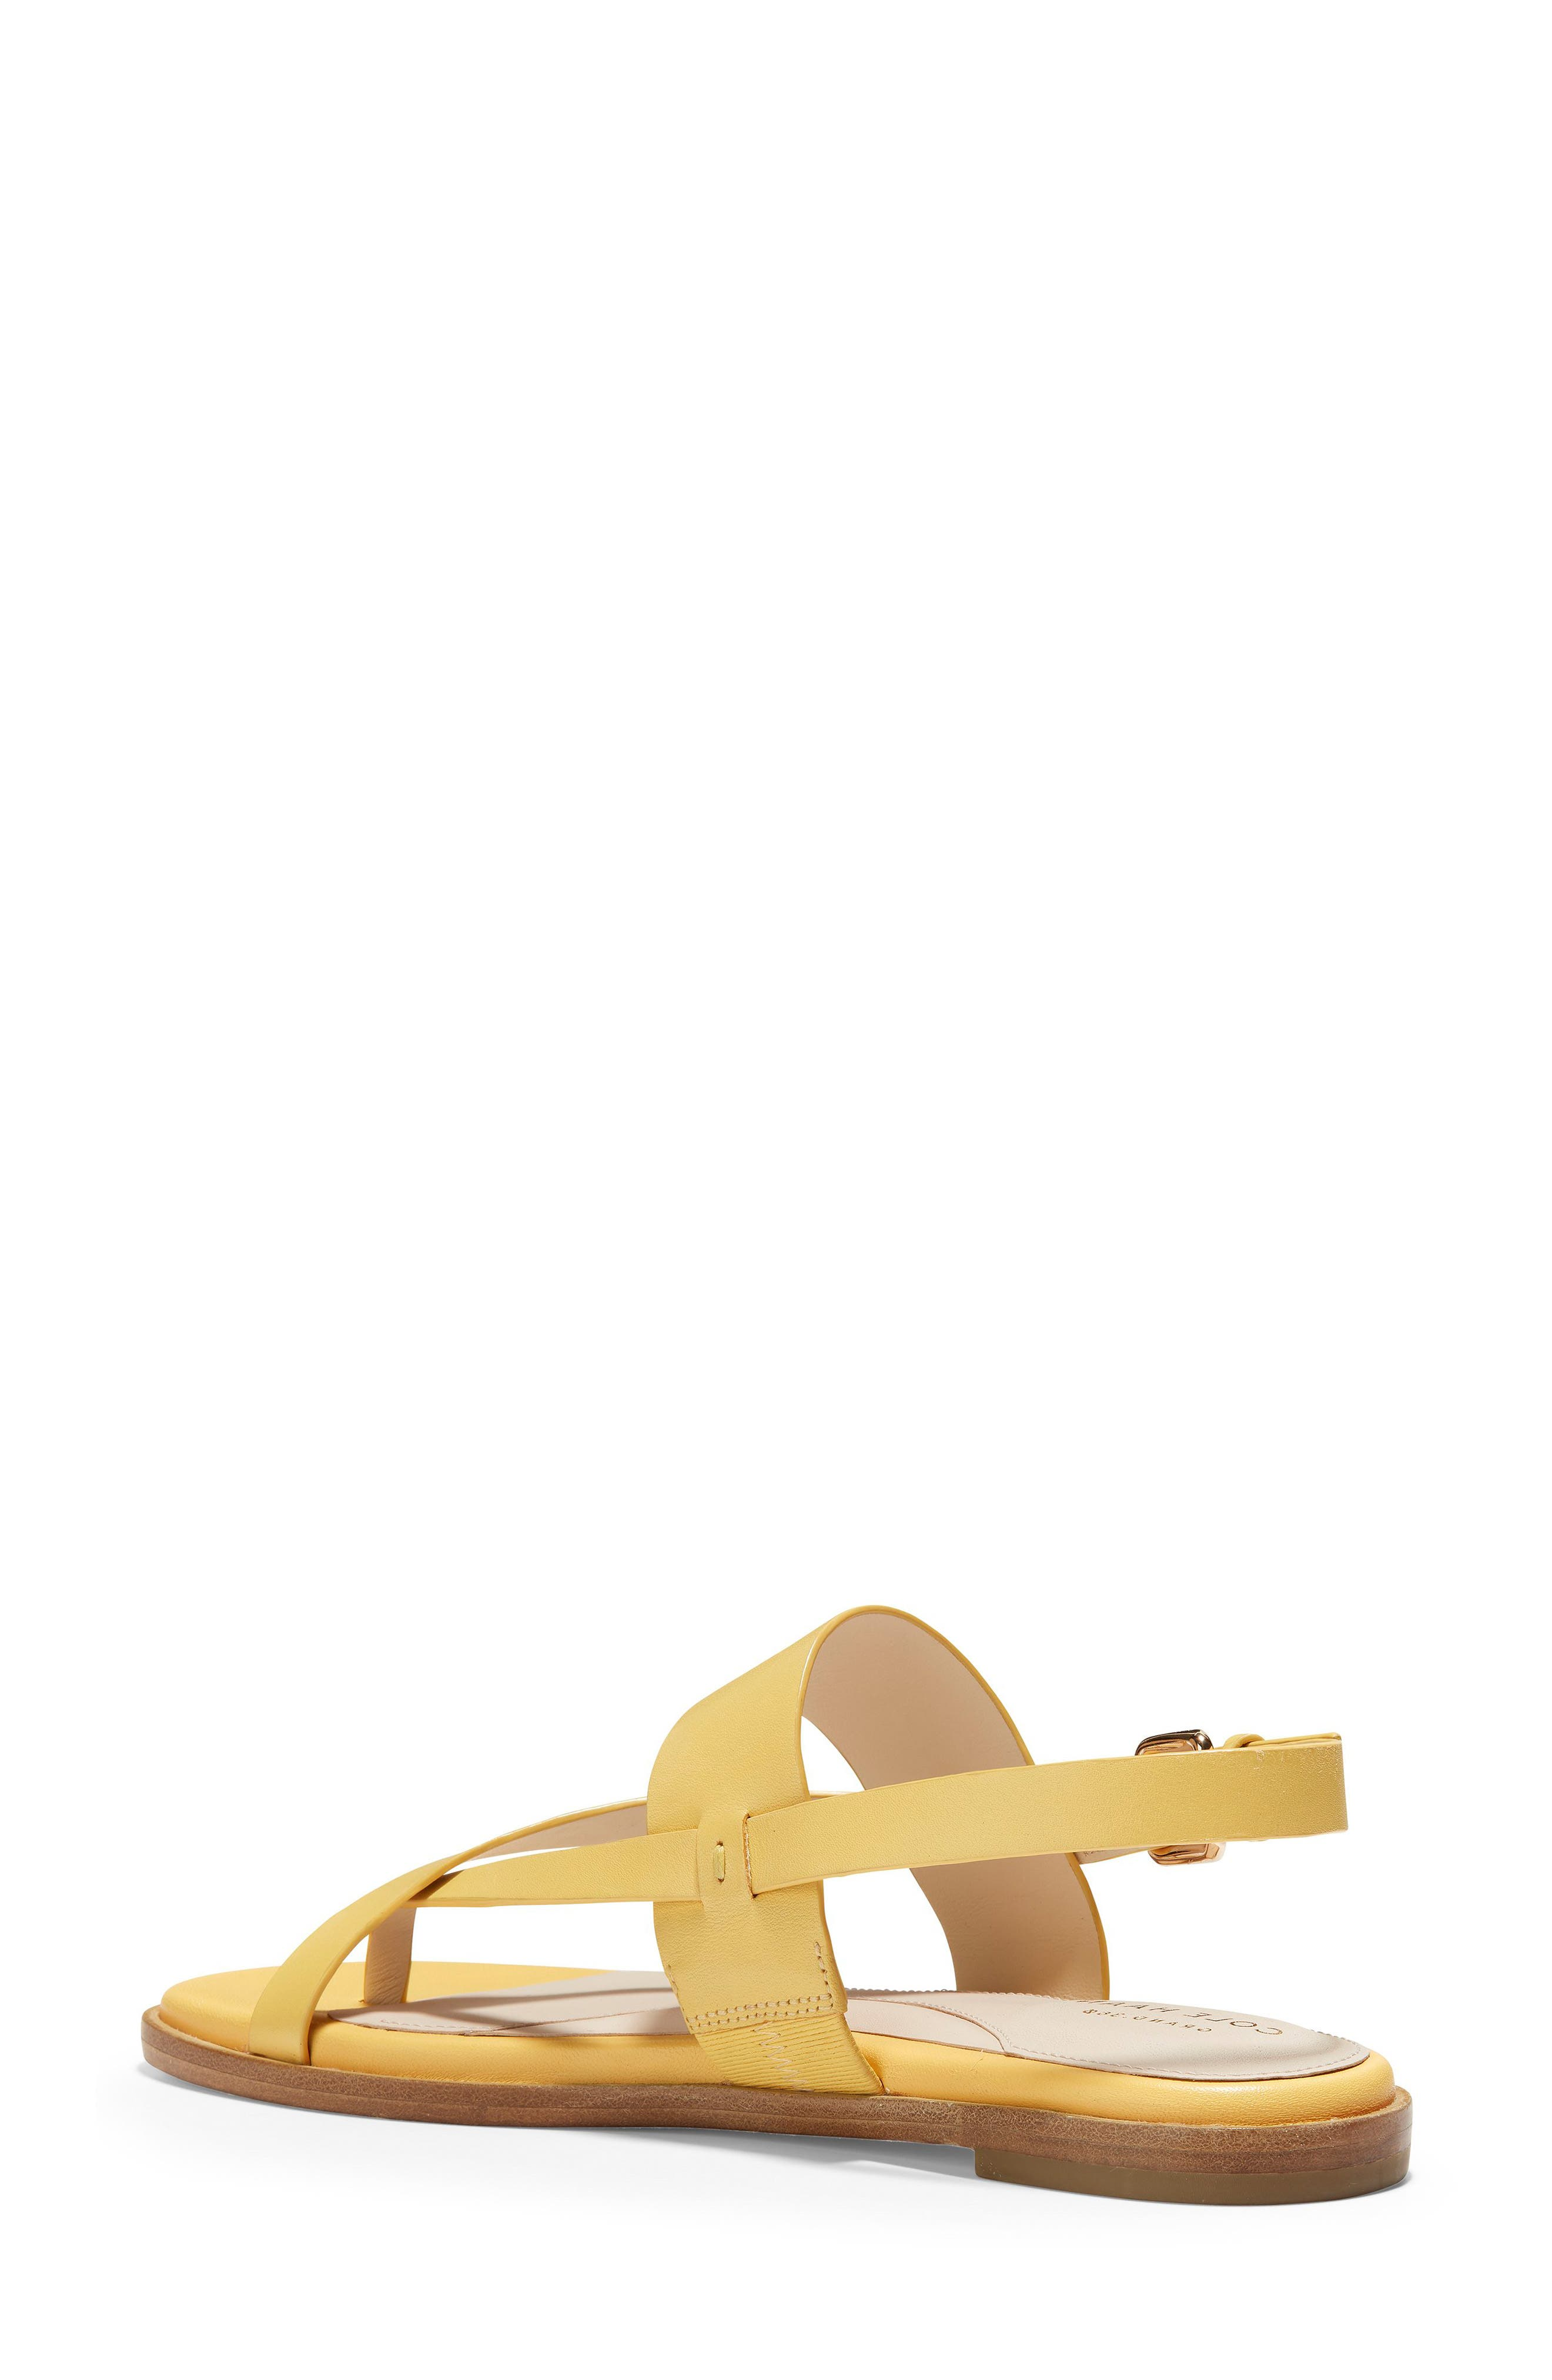 COLE HAAN, Anica Sandal, Alternate thumbnail 2, color, SUNSET GOLD LEATHER